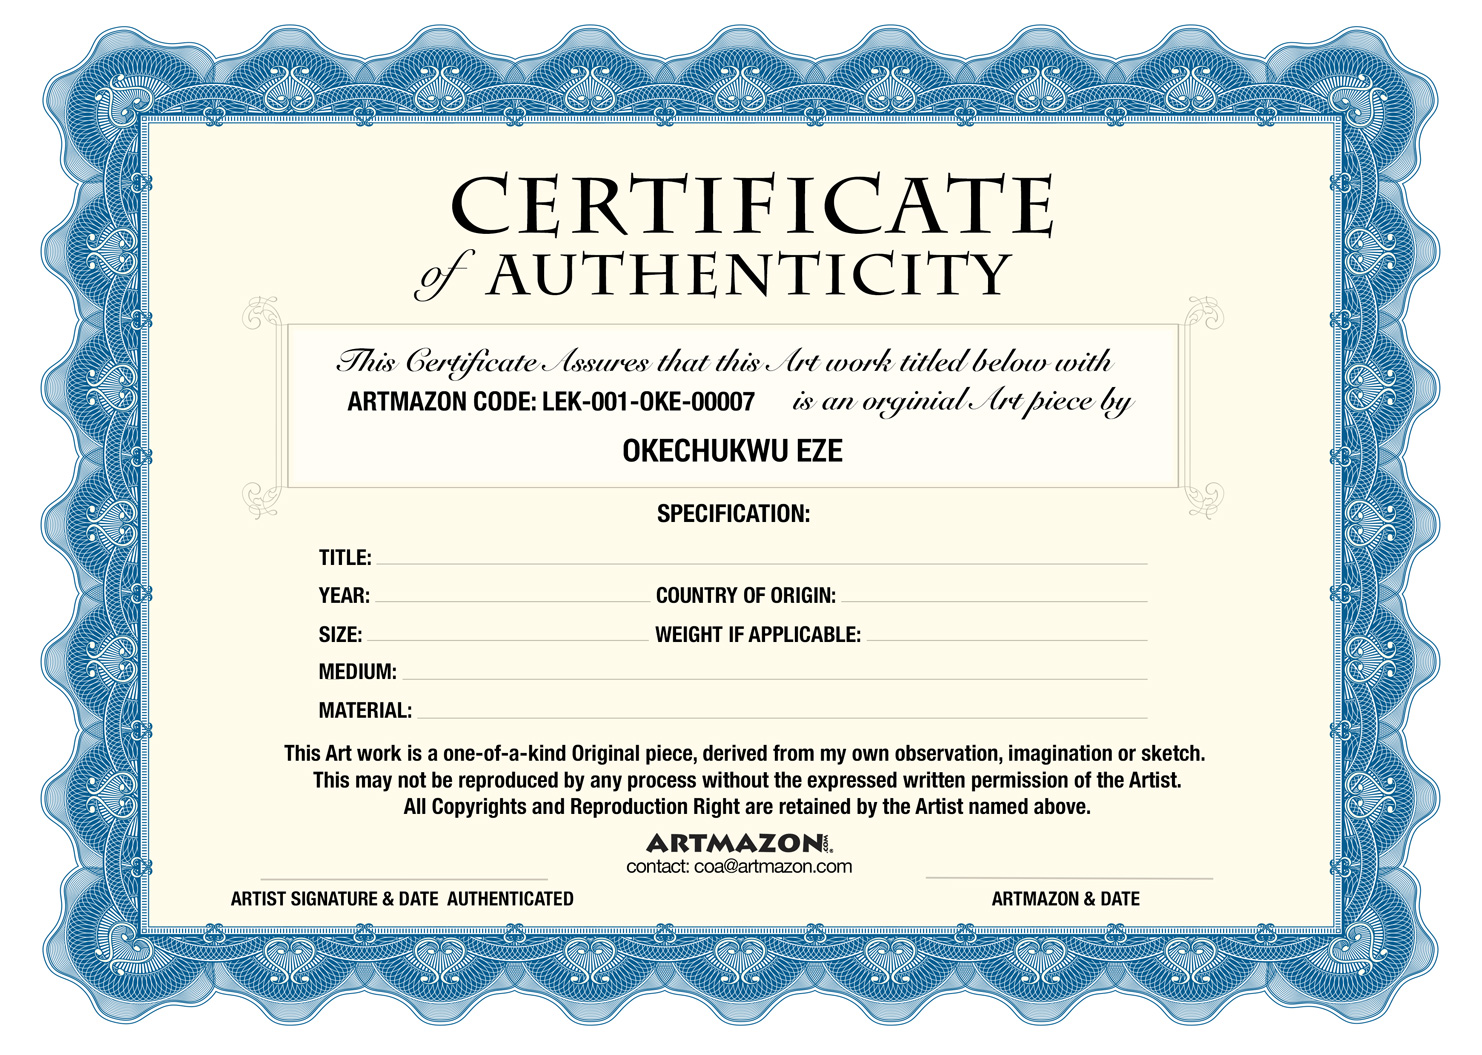 Coa certificate of authenticity for Certificate of authenticity autograph template